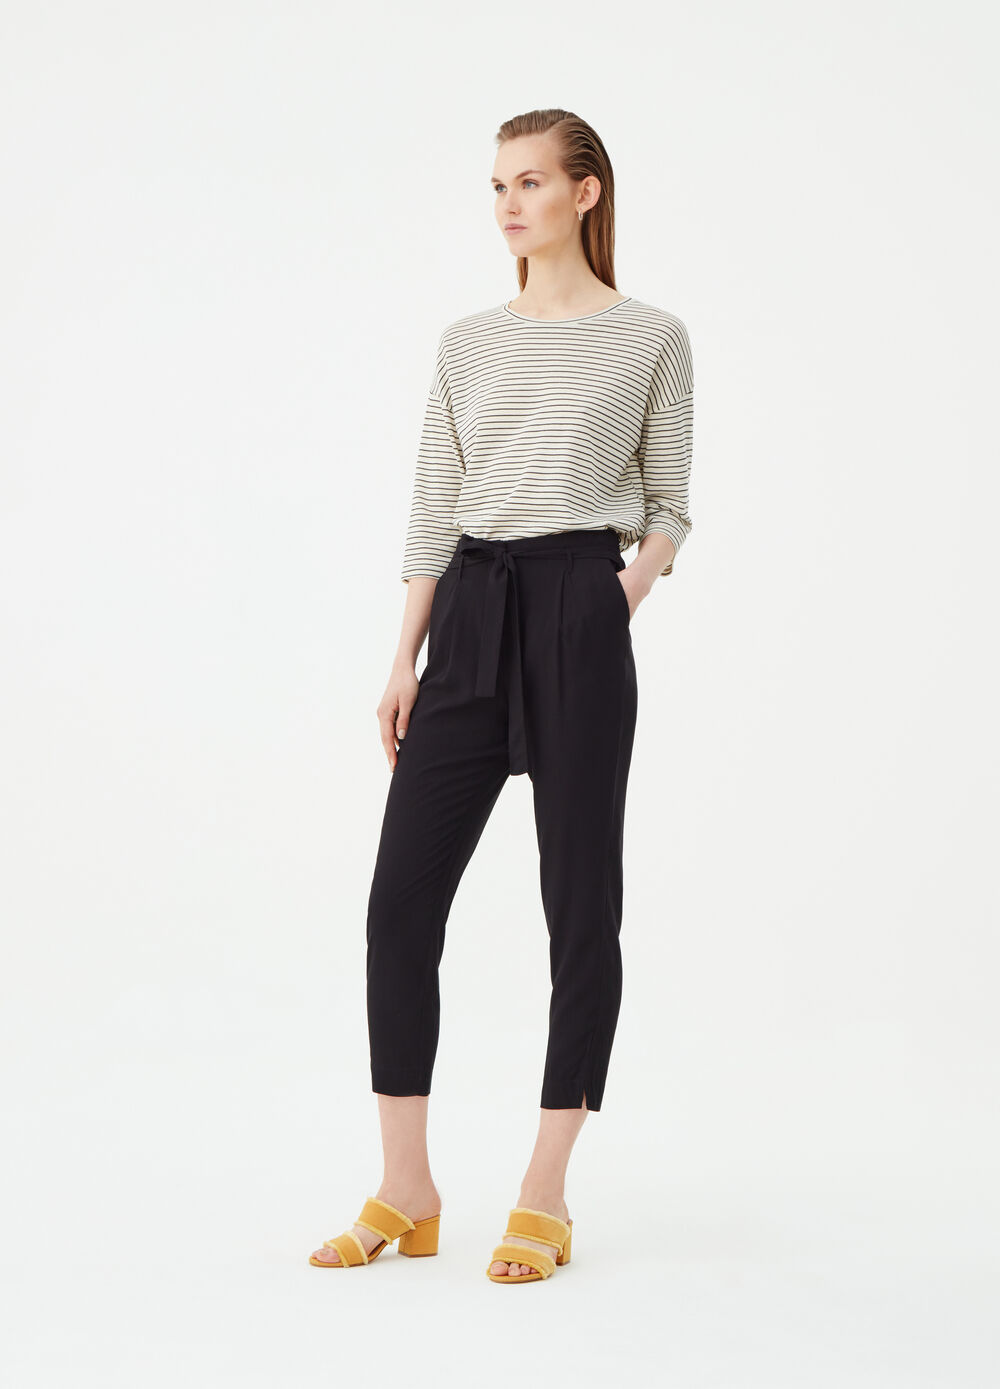 Jogging trousers with knotted belt